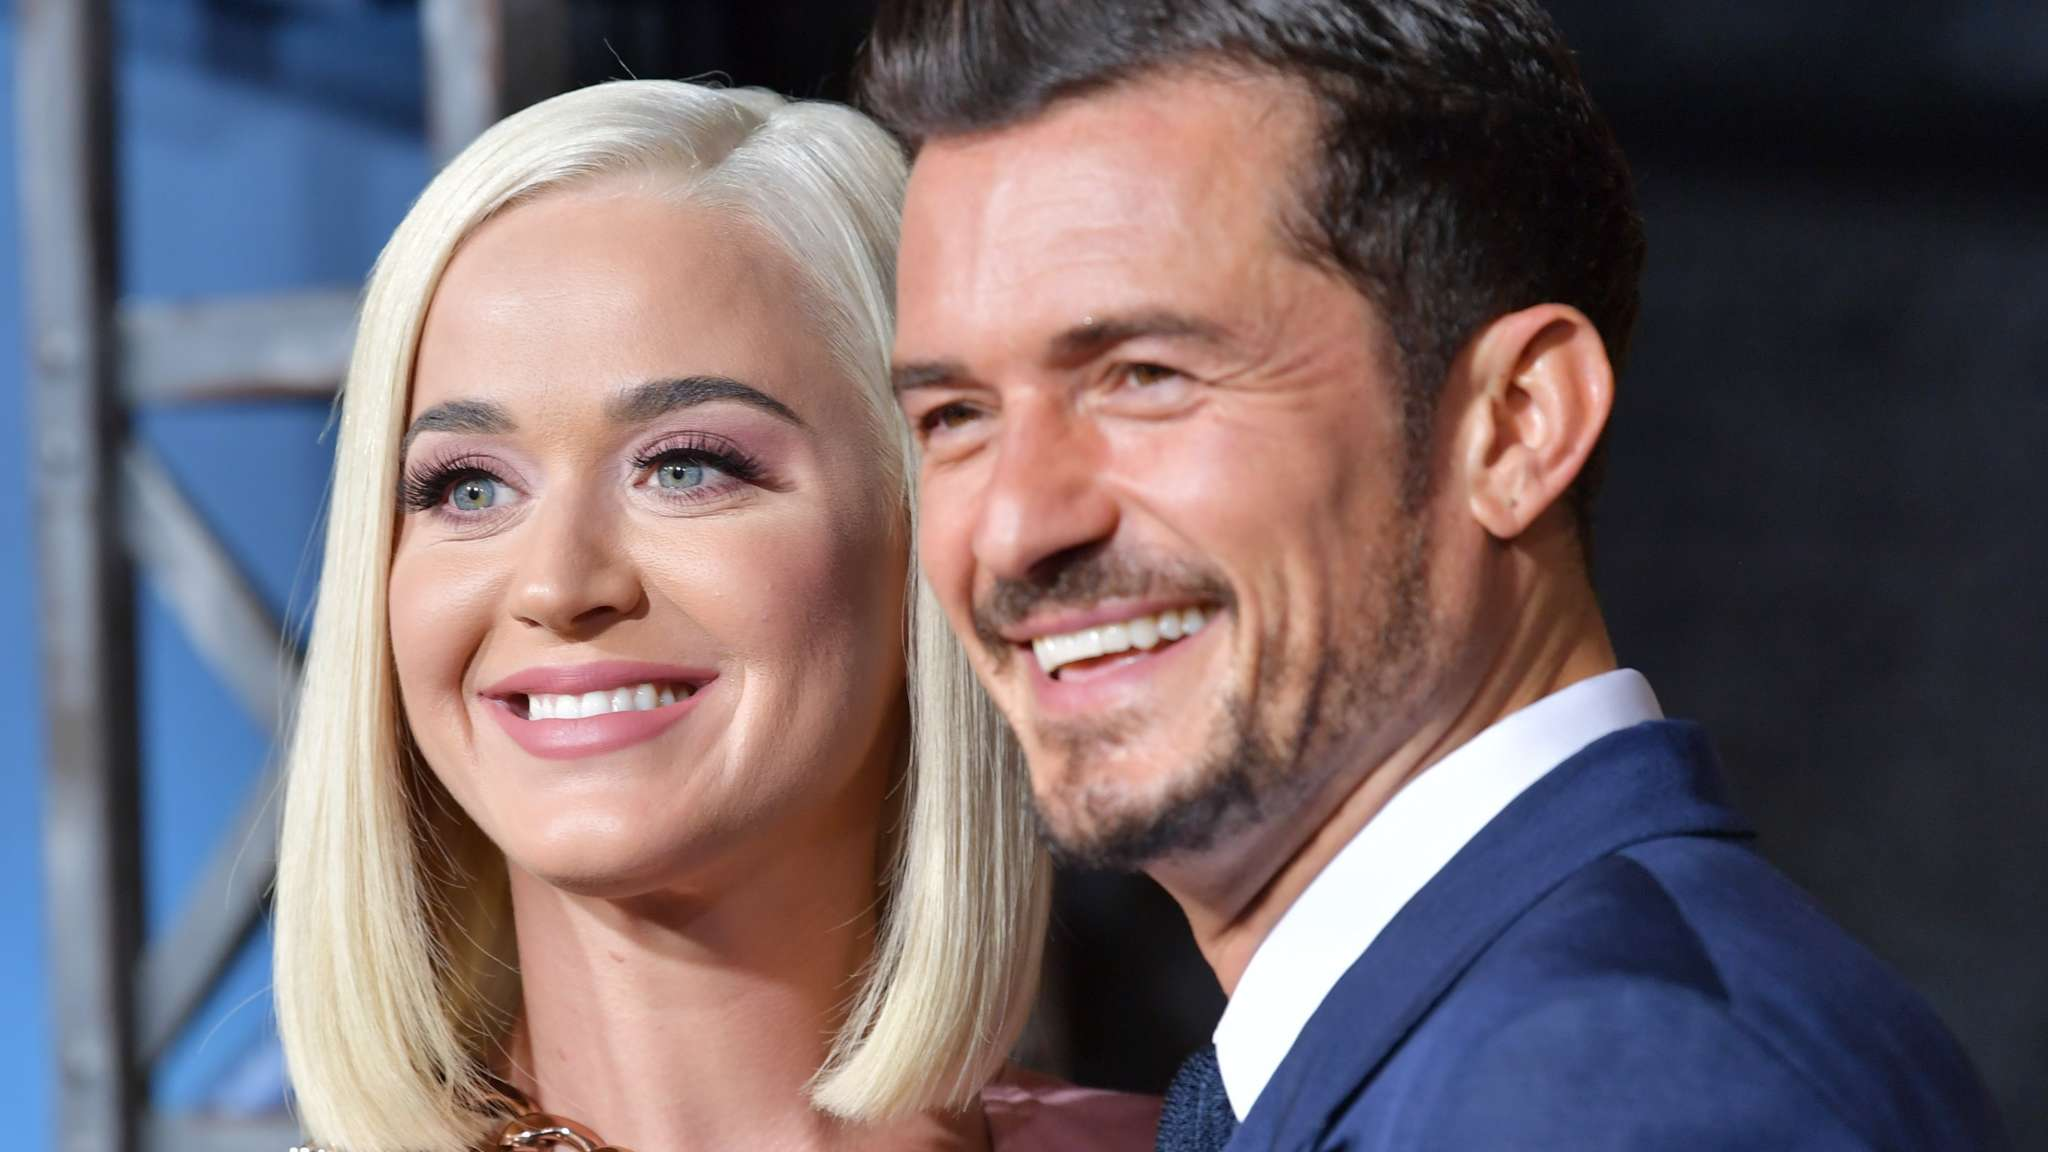 katy-perry-and-orlando-bloom-welcome-their-first-child-together-find-out-the-name-and-check-out-the-first-pic